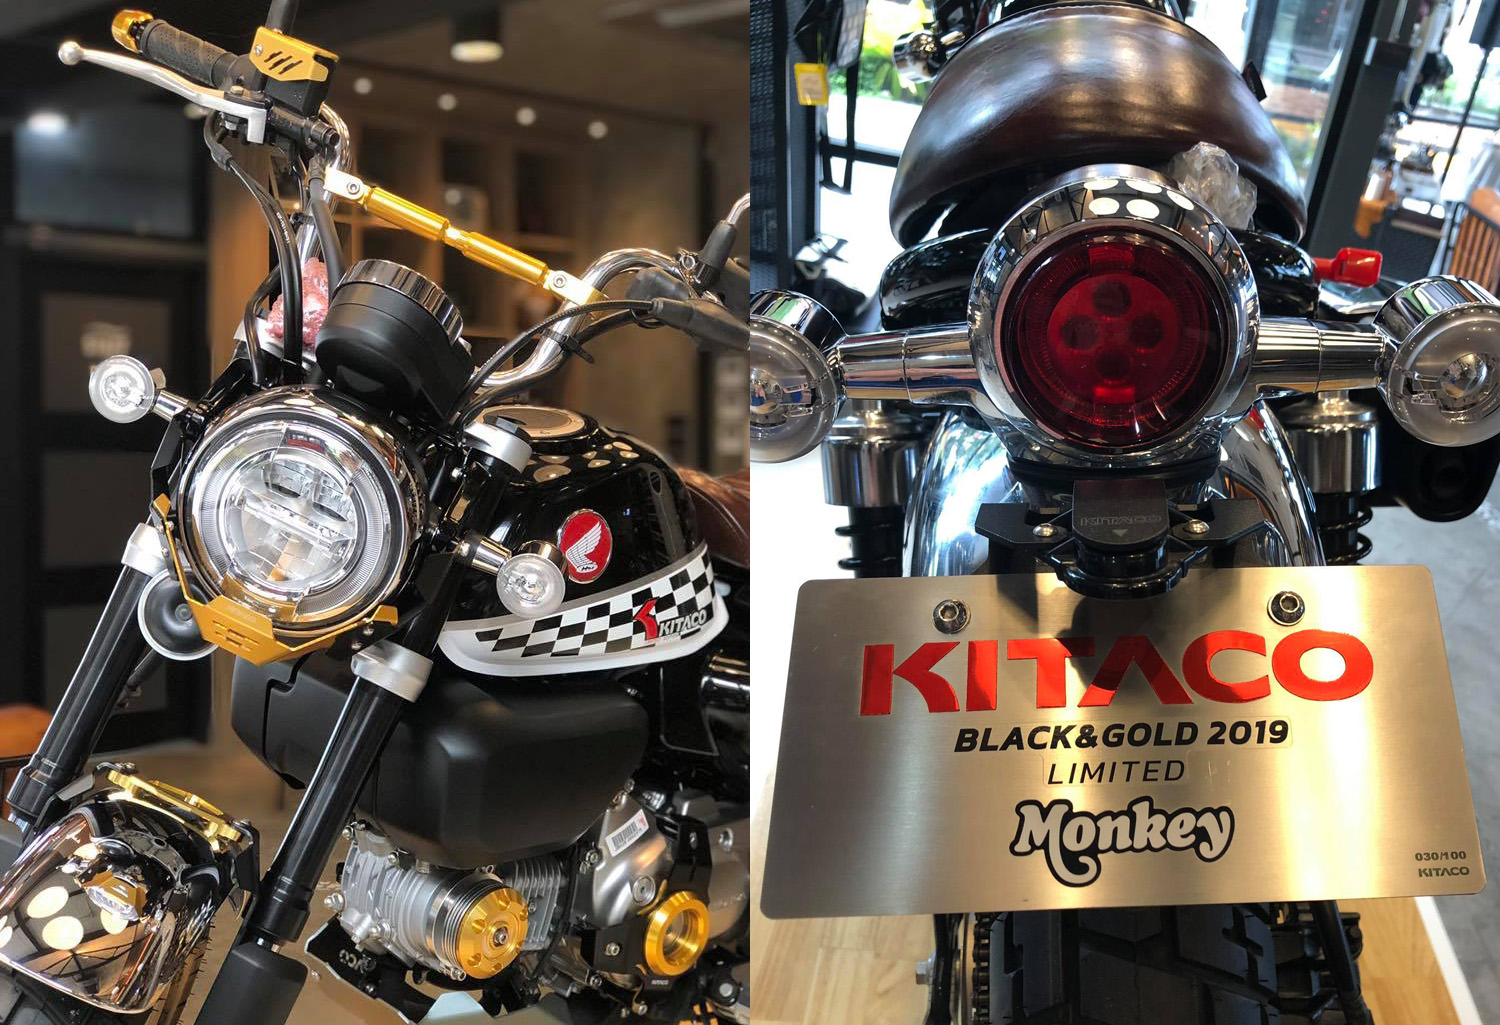 "Le Honda Monkey ""Kitaco Limited Edition Black & Gold"" du CUB House Phetchaburi - mini4temps.fr"